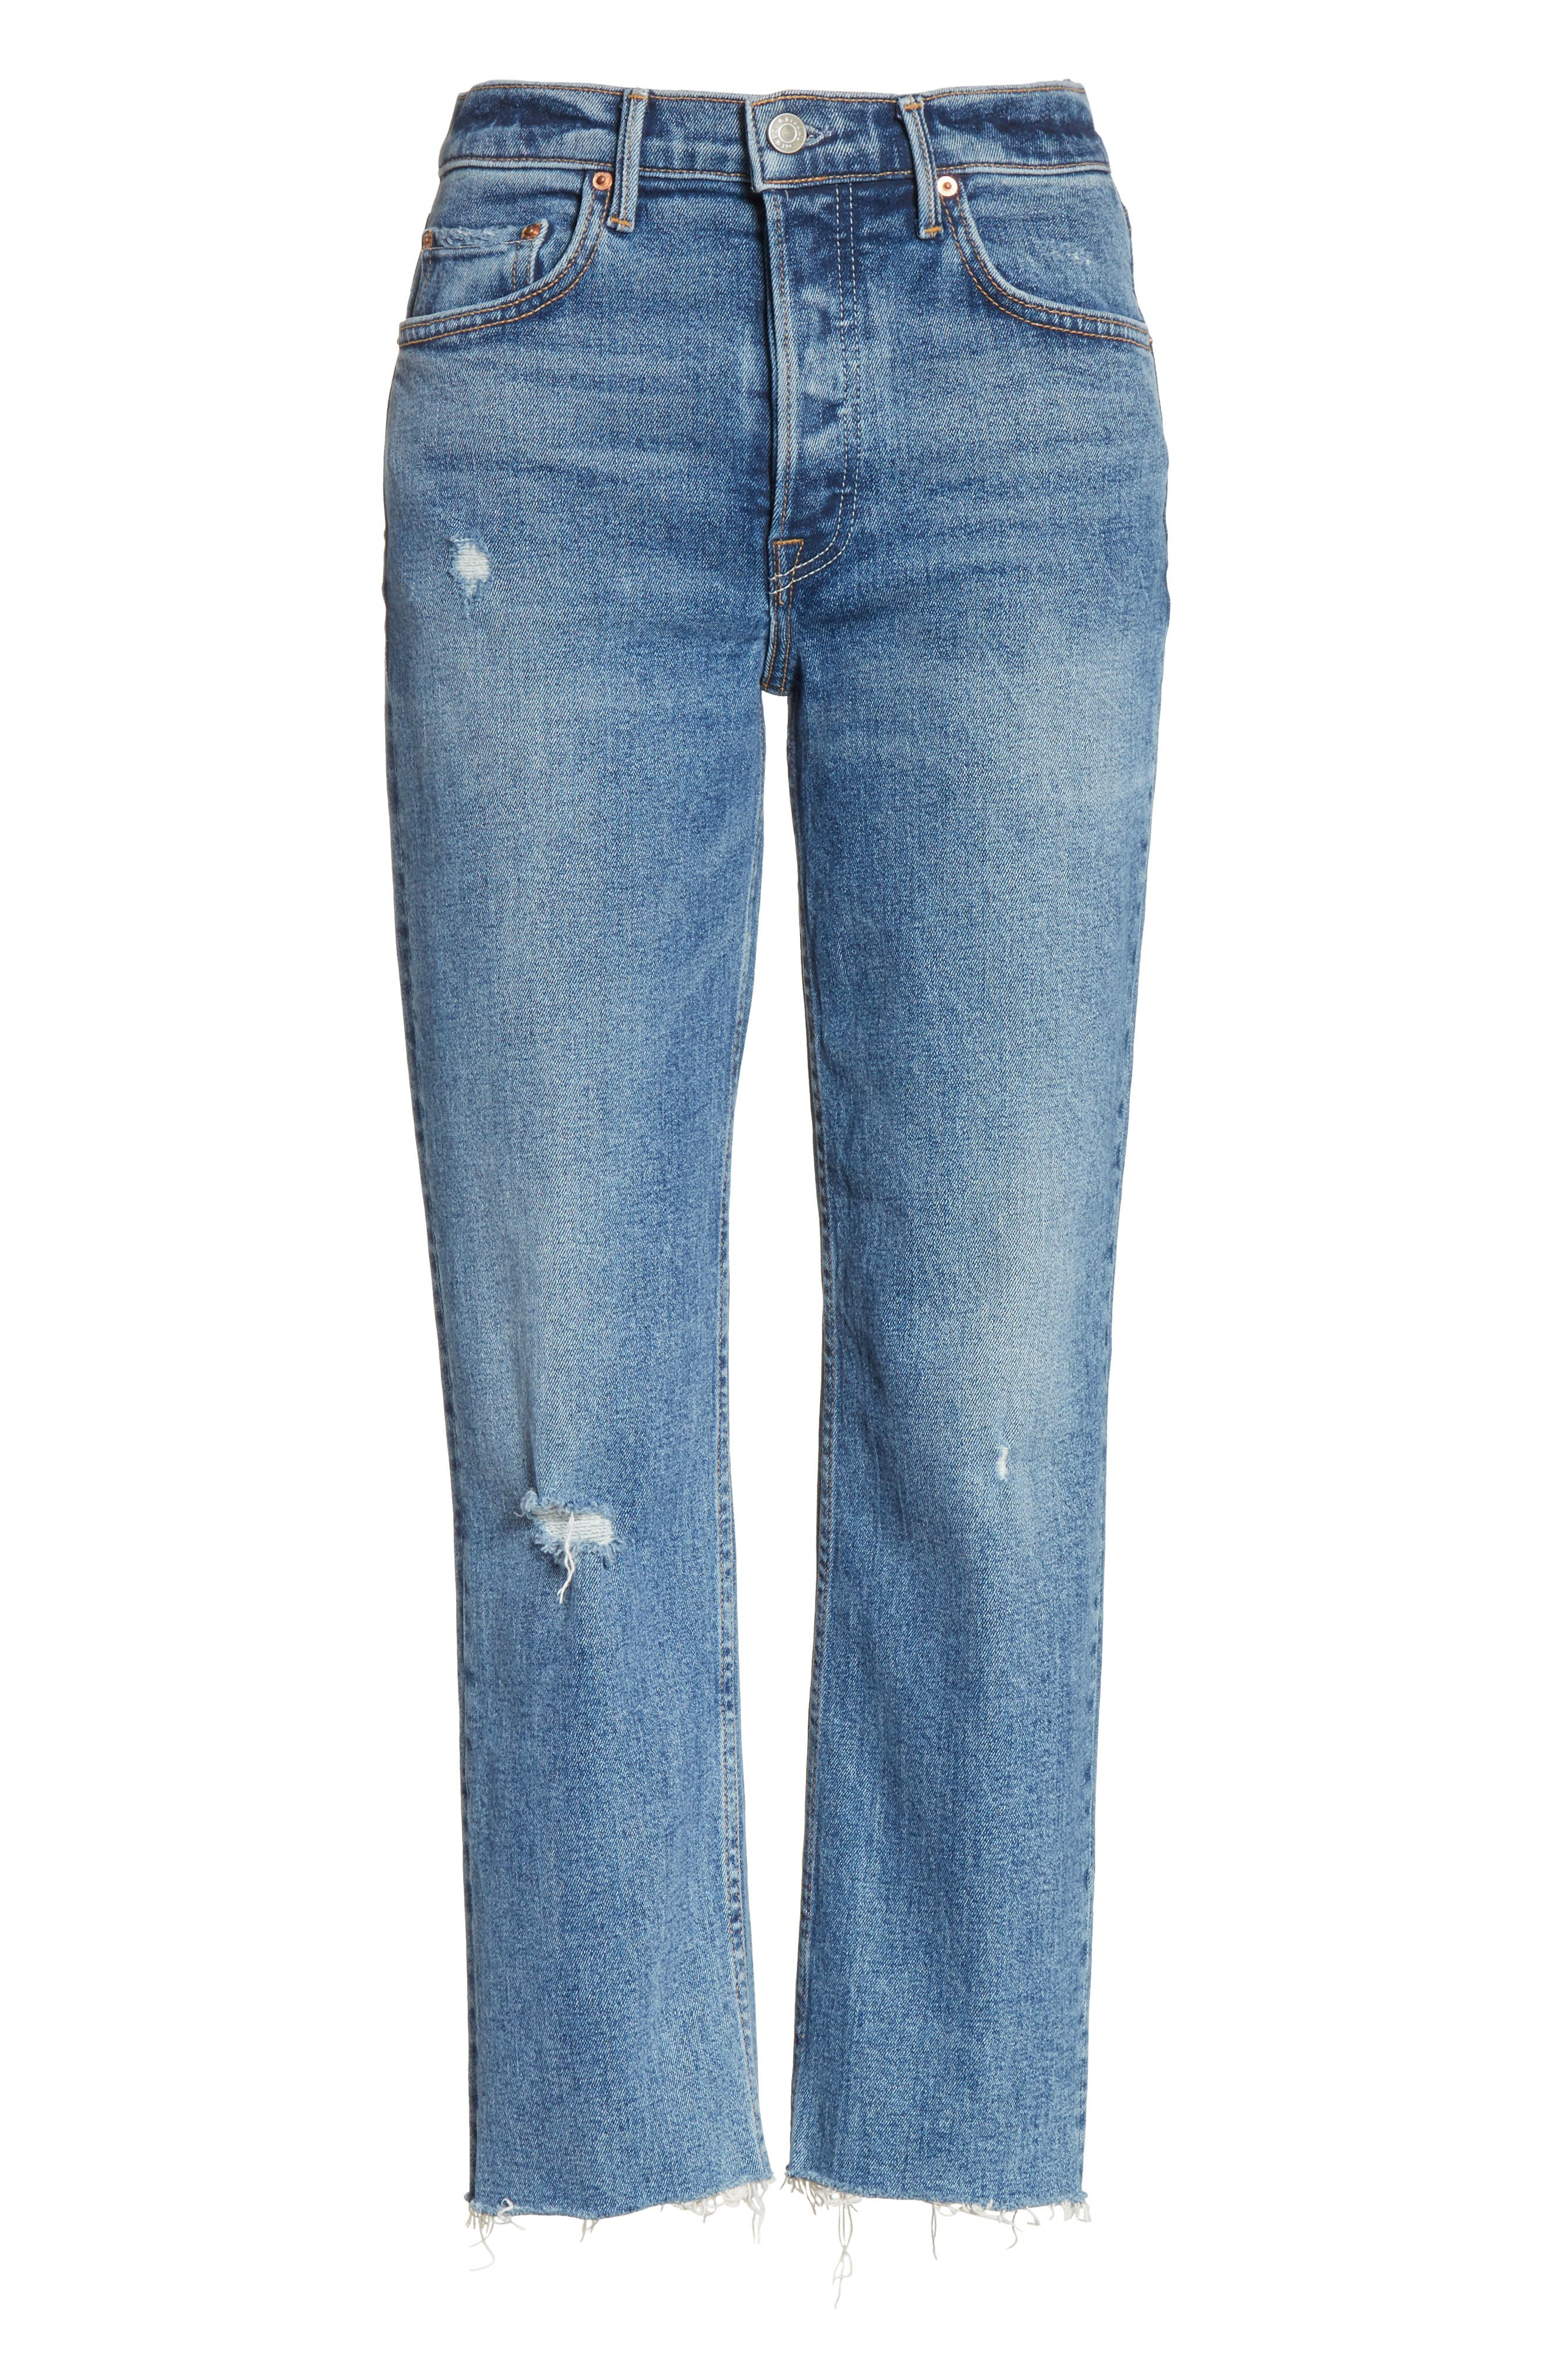 Helena Distressed Rigid High Waist Straight Jeans,                             Alternate thumbnail 6, color,                             470